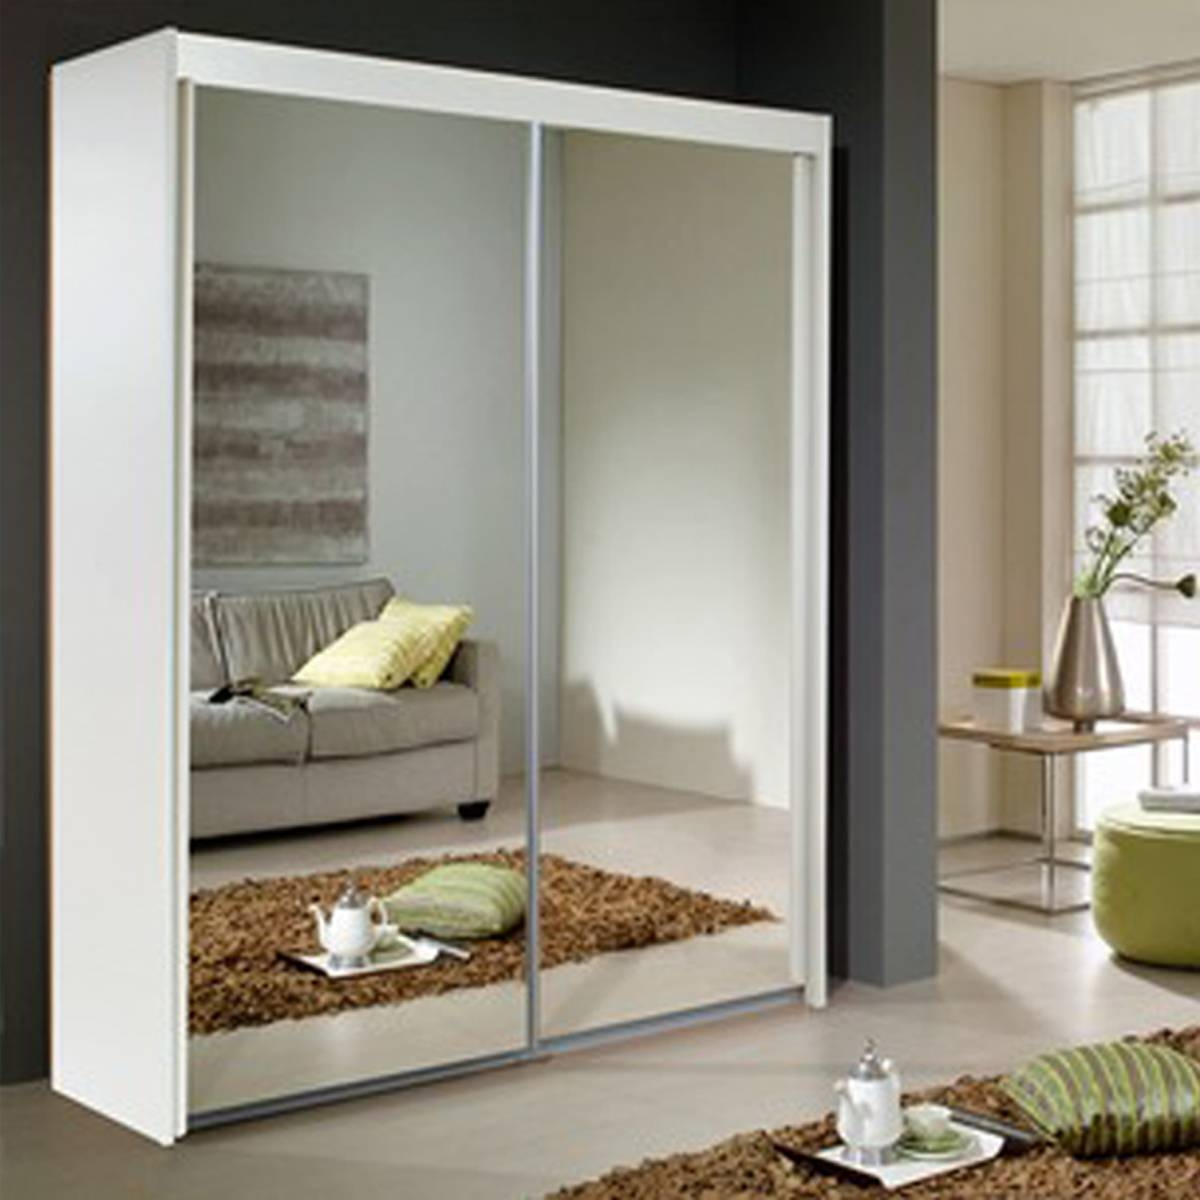 Sliding Door Mirrored Wardrobe From The House Of Reeves Croydon within Mirrored Wardrobes (Image 13 of 15)